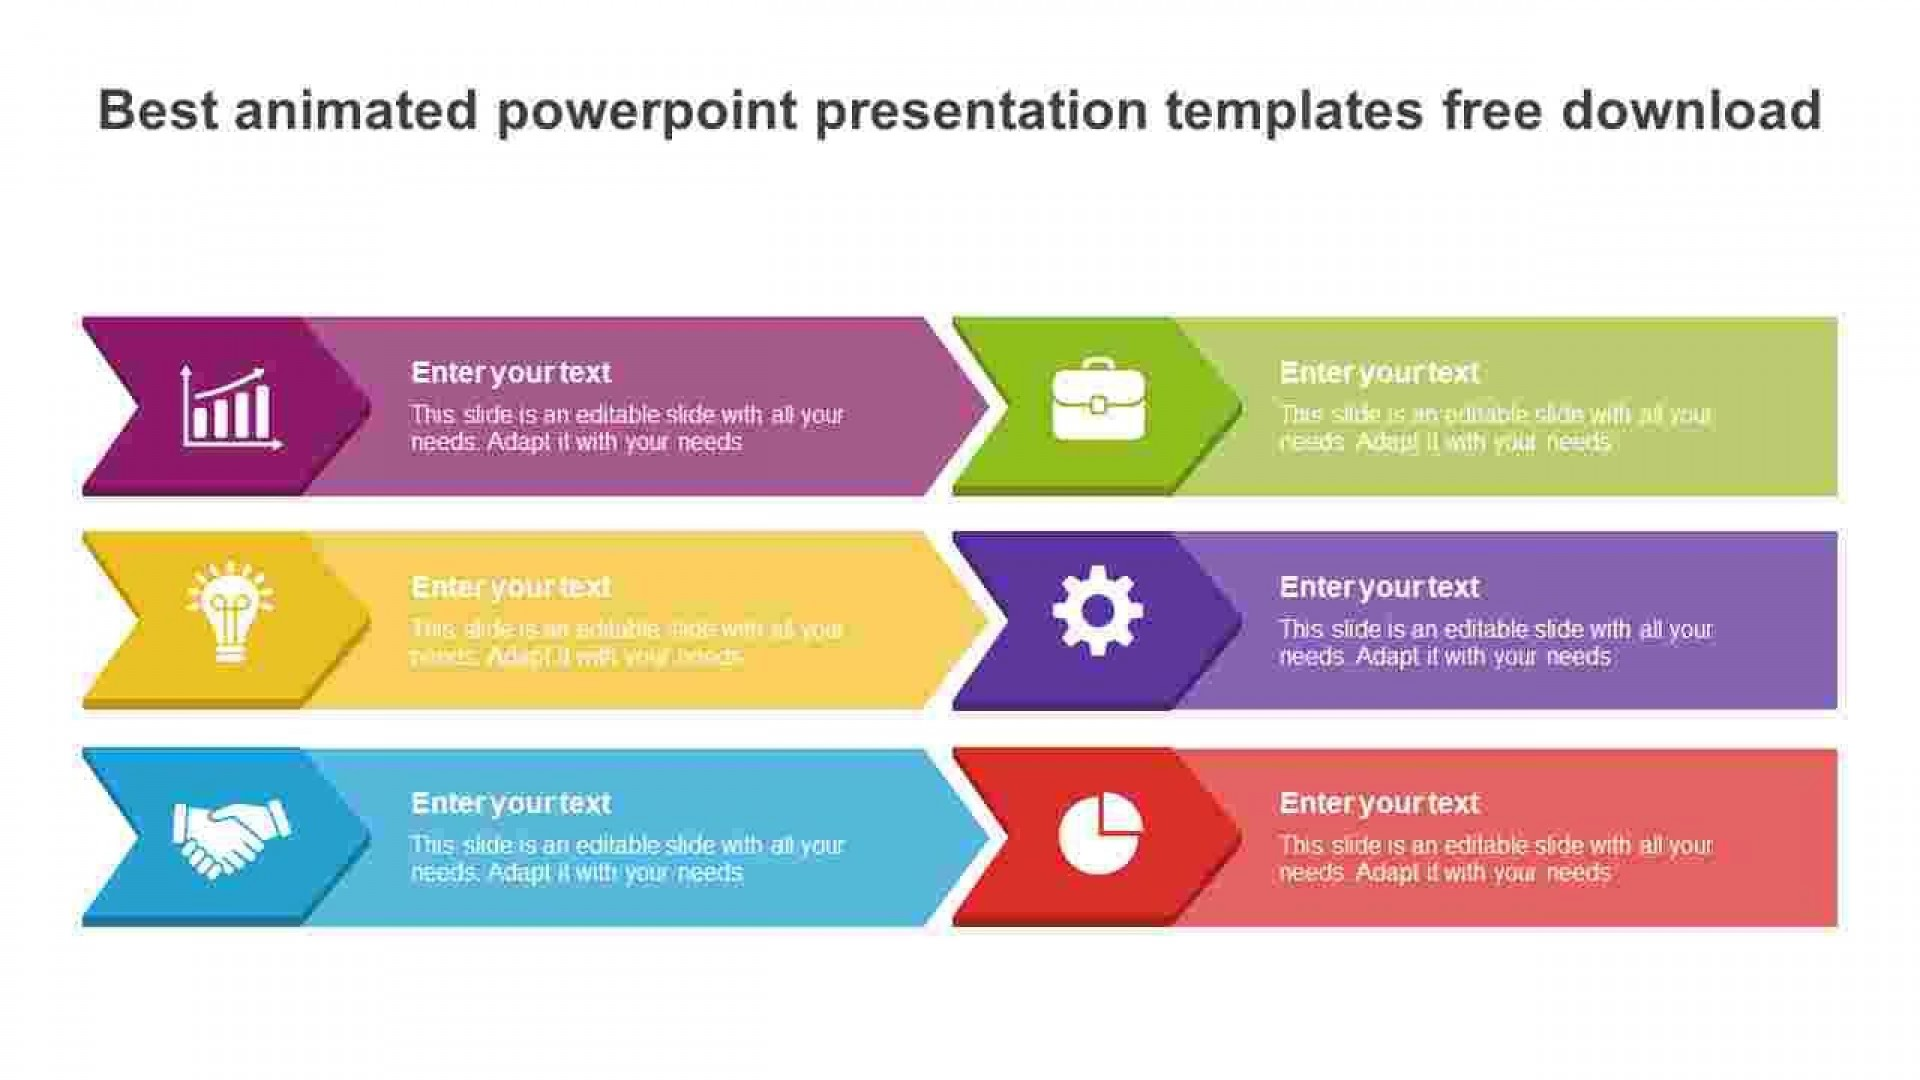 005 Archaicawful Free 3d Animated Powerpoint Template Download Inspiration  2017 2016 Tinyppt1920